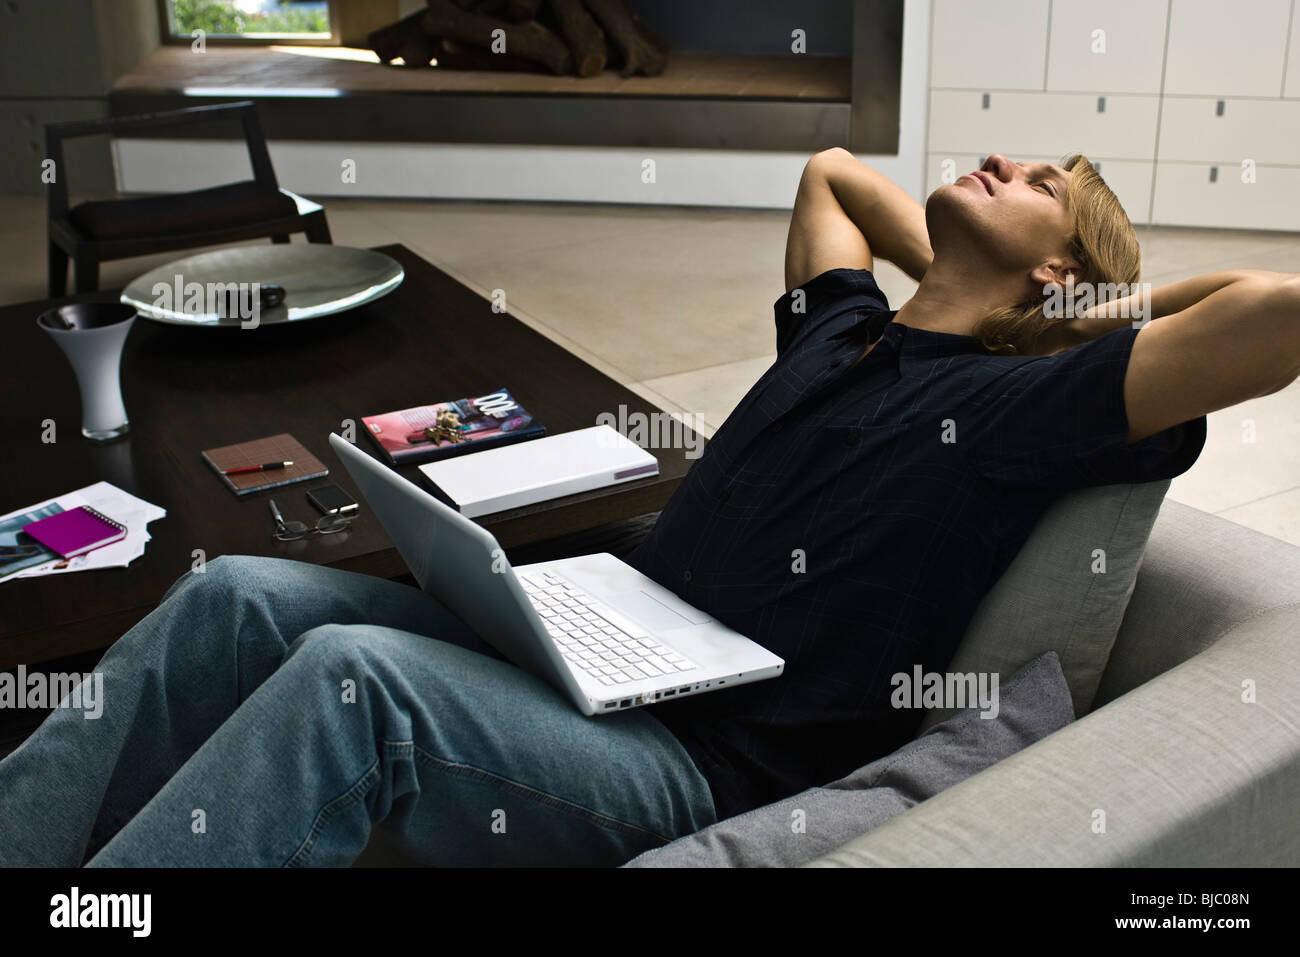 Man relaxing on sofa with laptop computer on lap - Stock Image